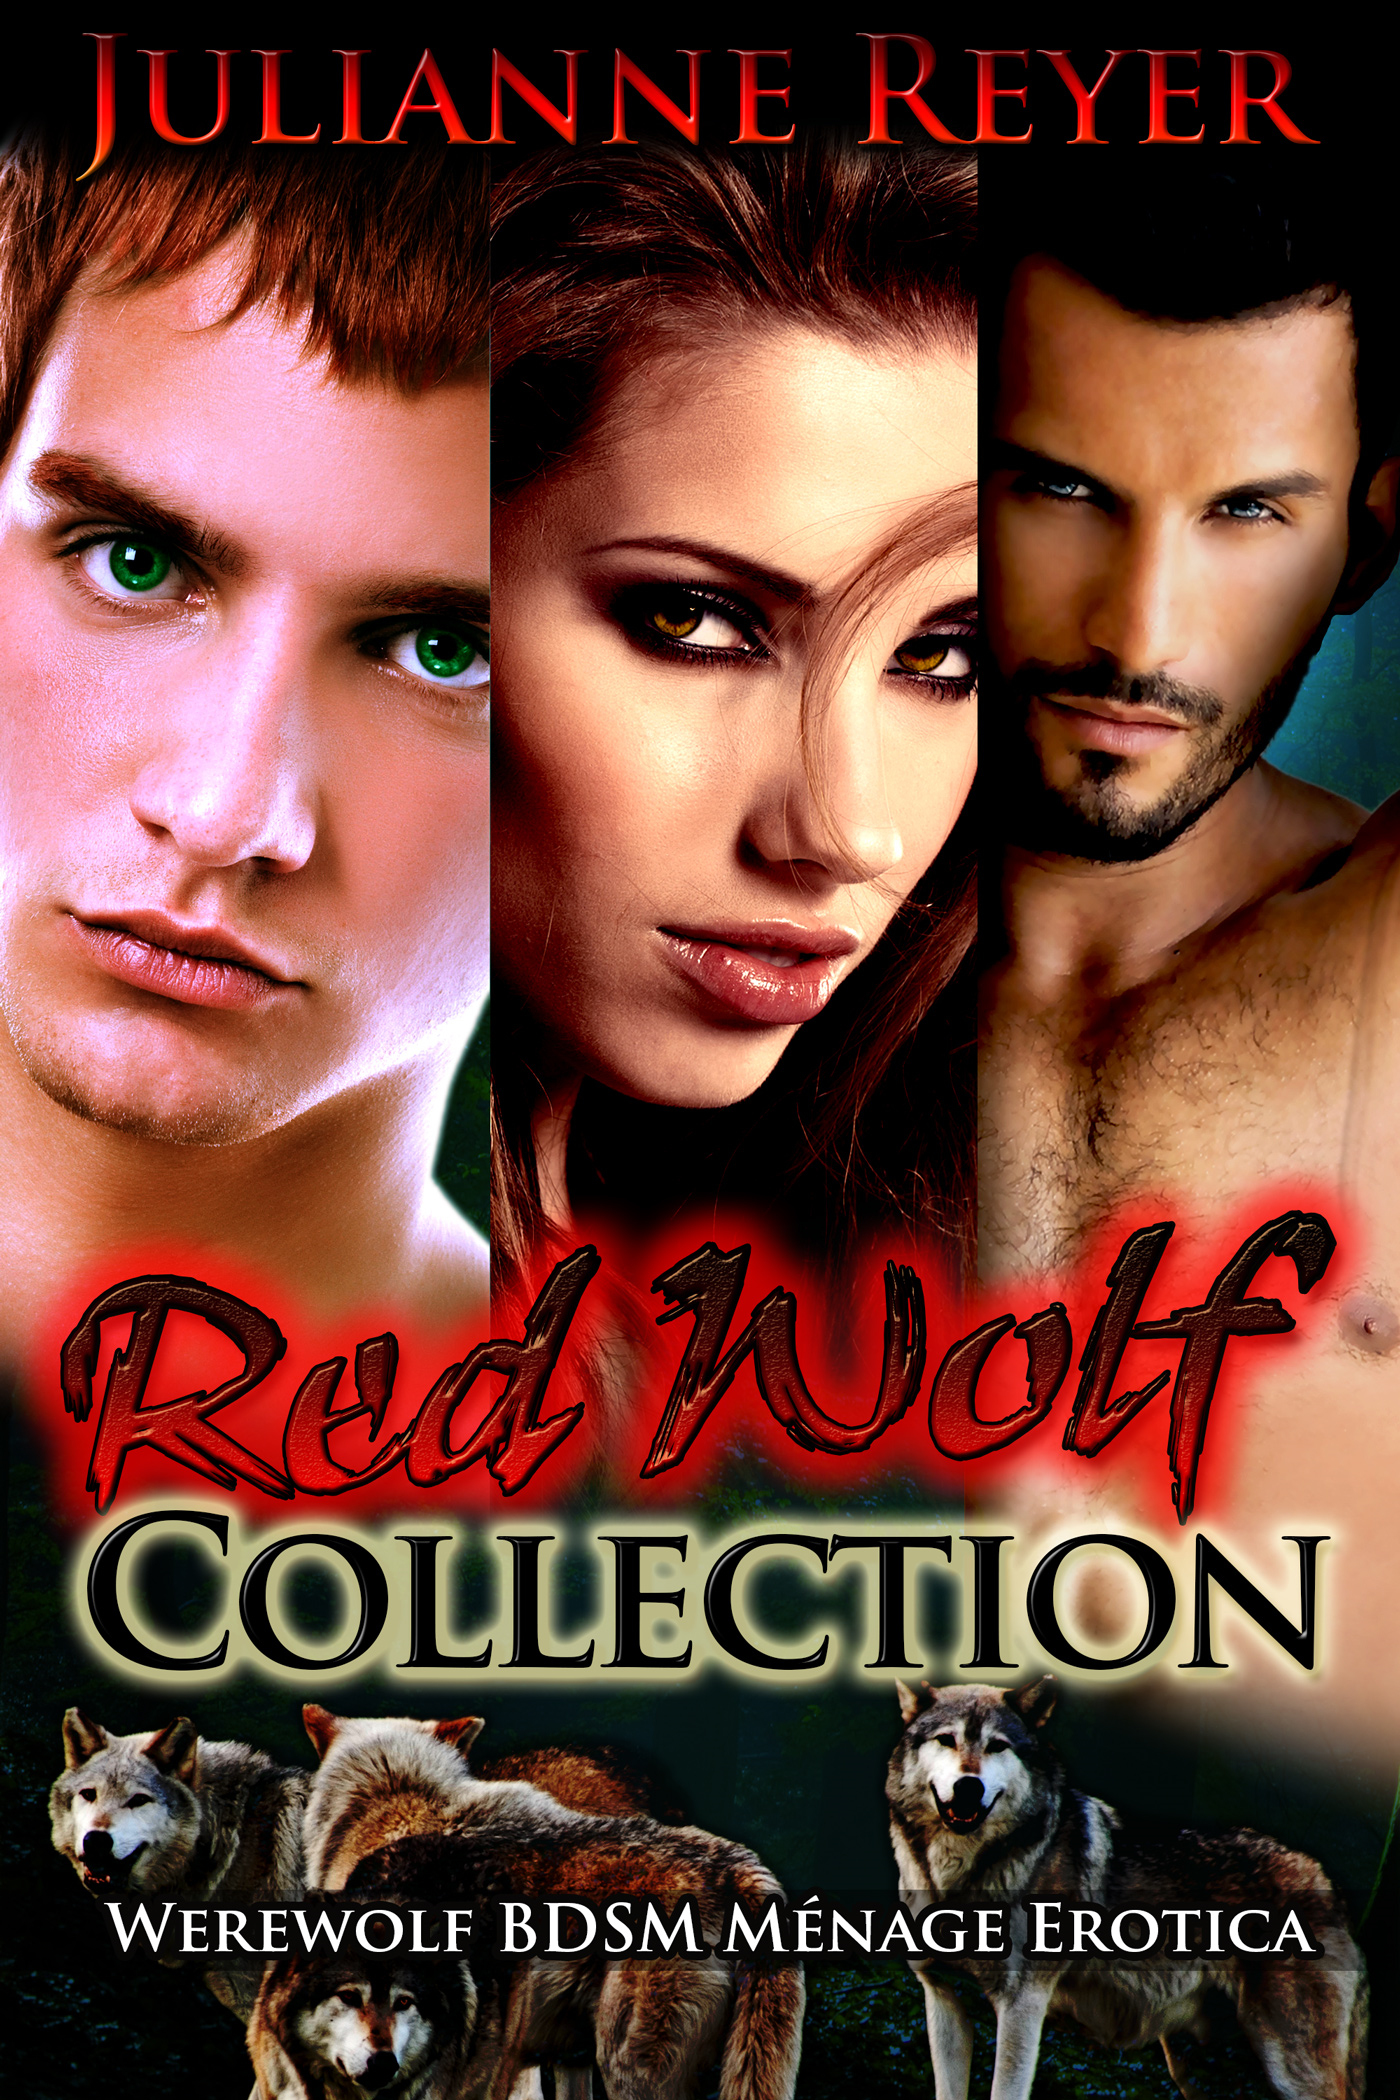 Red Wolf Collection (Werewolf BDSM Menage Erotica) (paranormal, new adult, lgbt, erotic, romance, sex, alpha male)